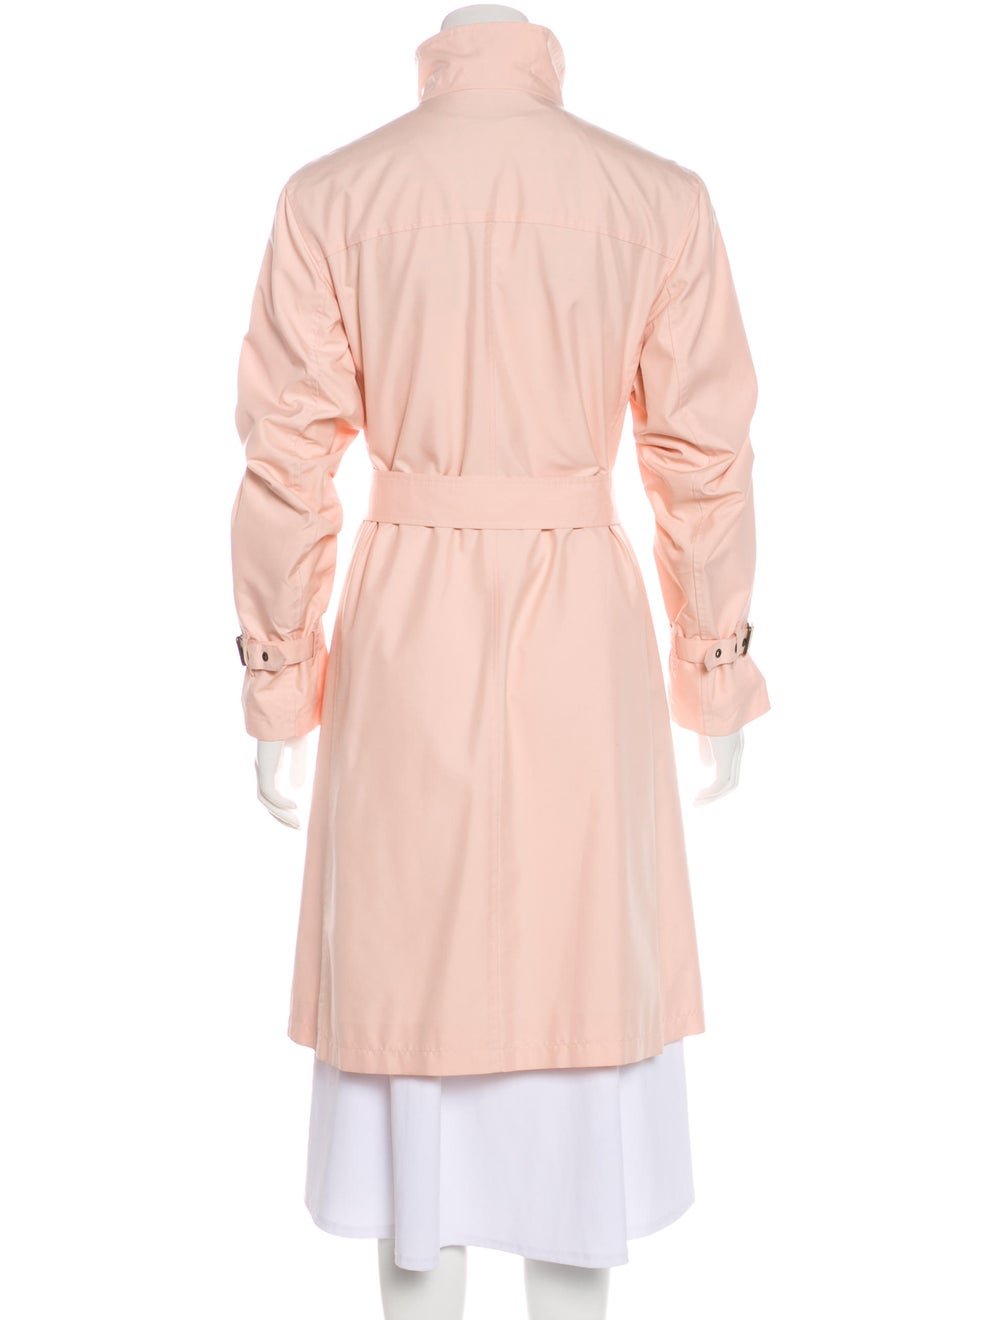 Burberry Tess Trench Coat Pink - image 3